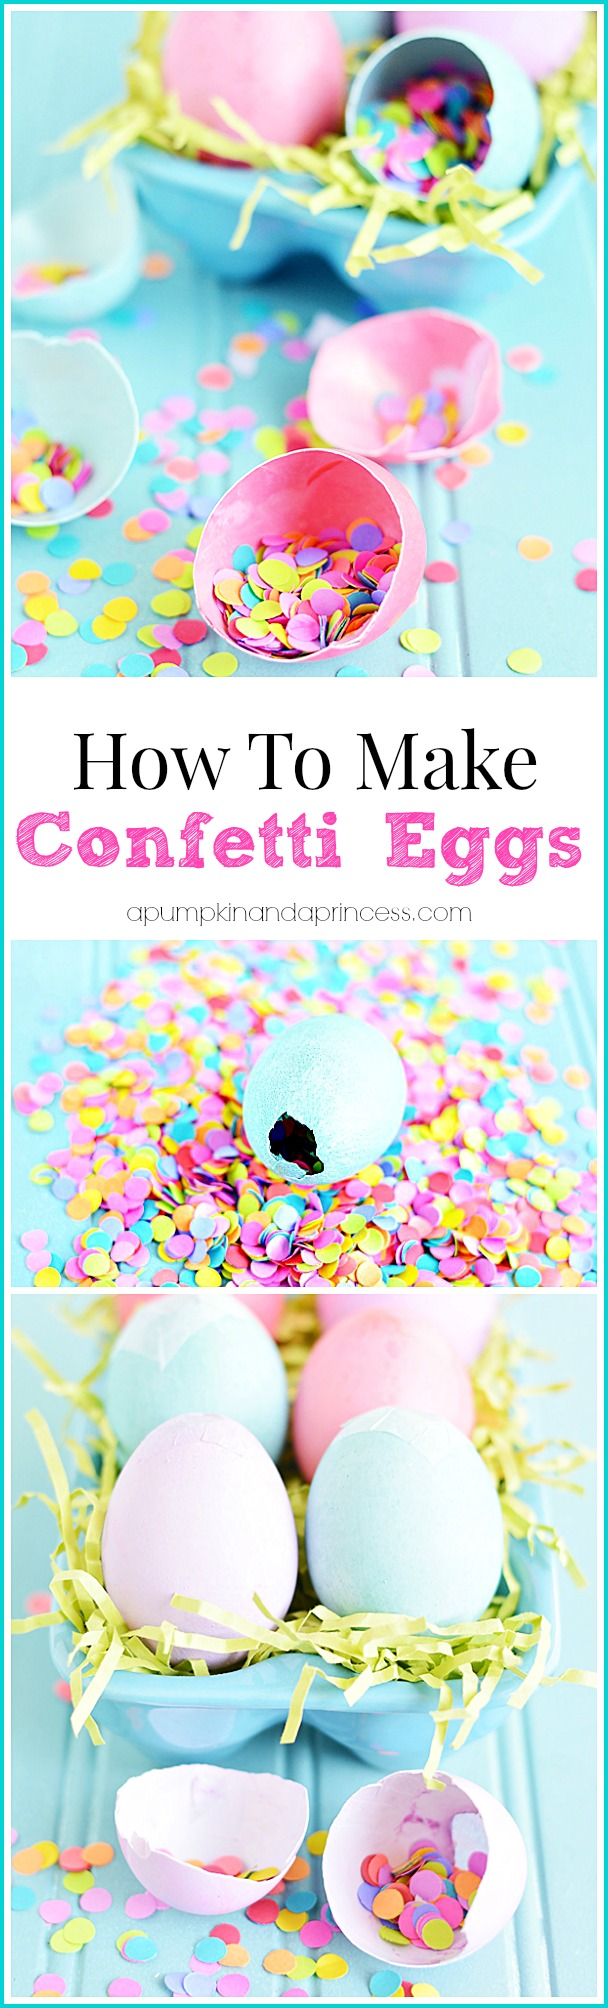 How To Make Confetti Eggs Tutorial